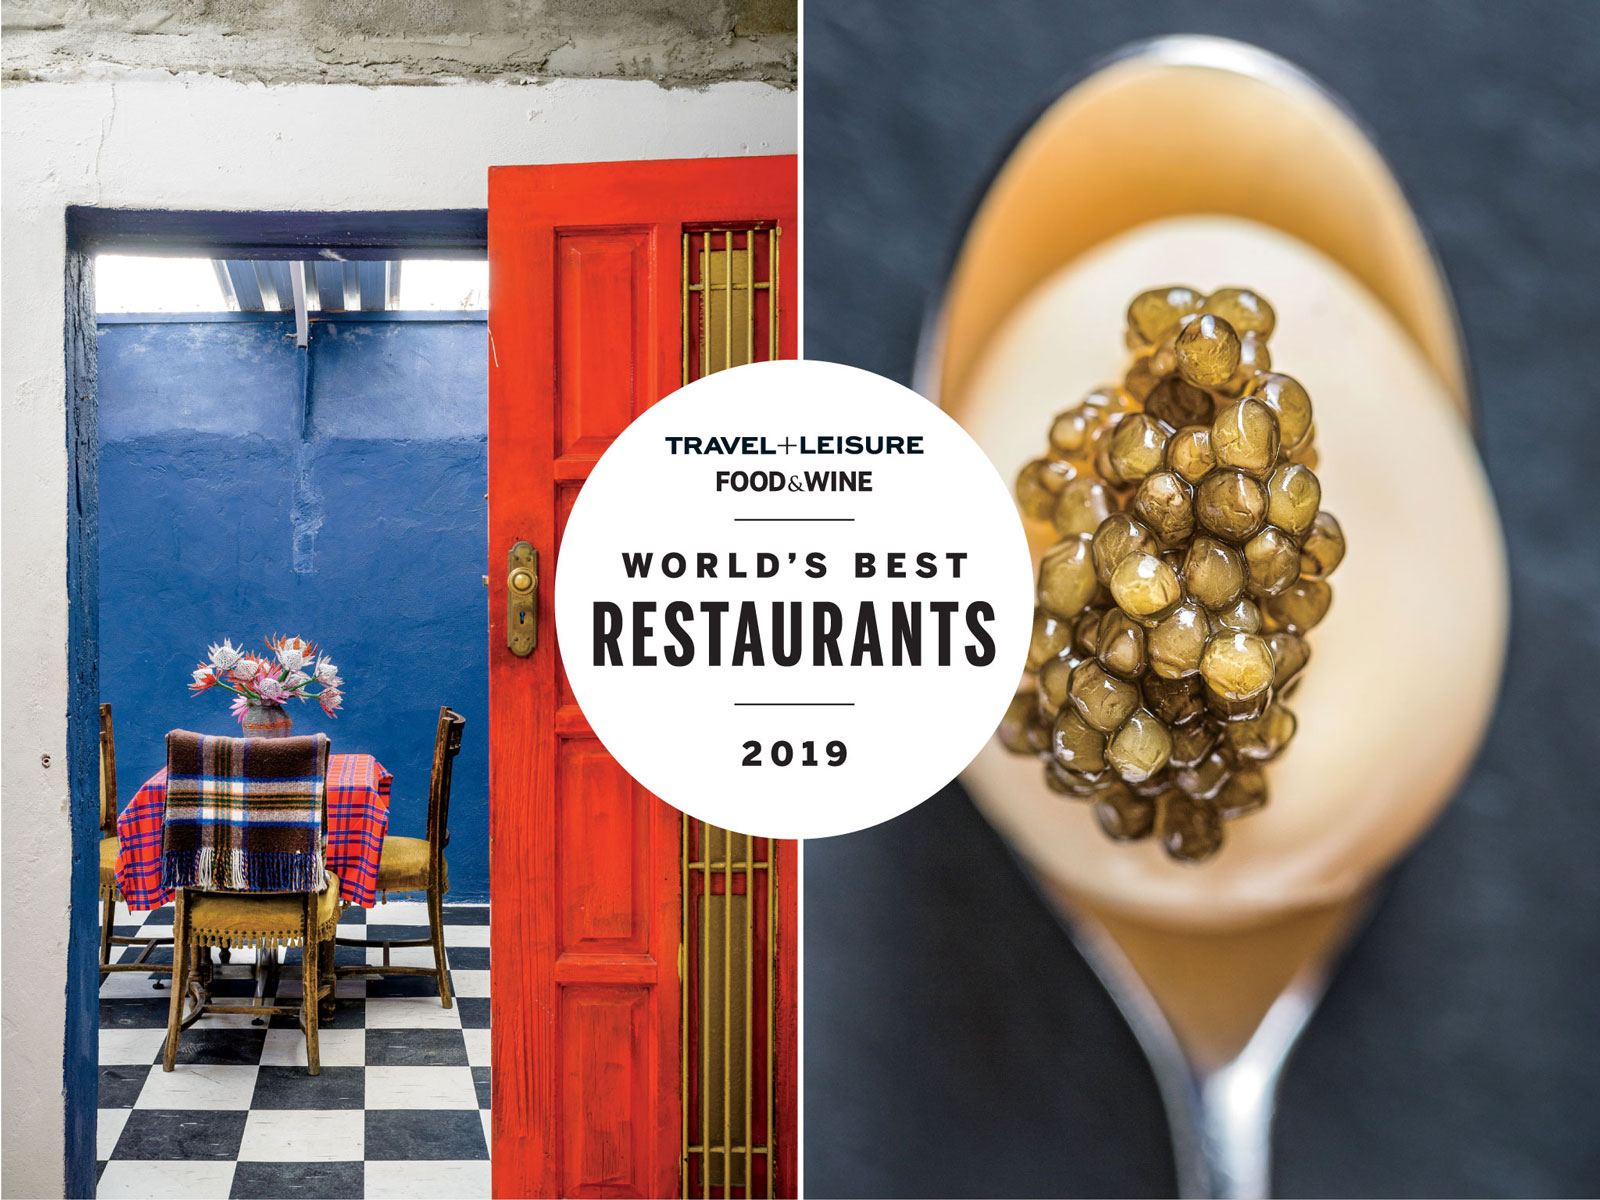 How We Chose the World's Best Restaurants